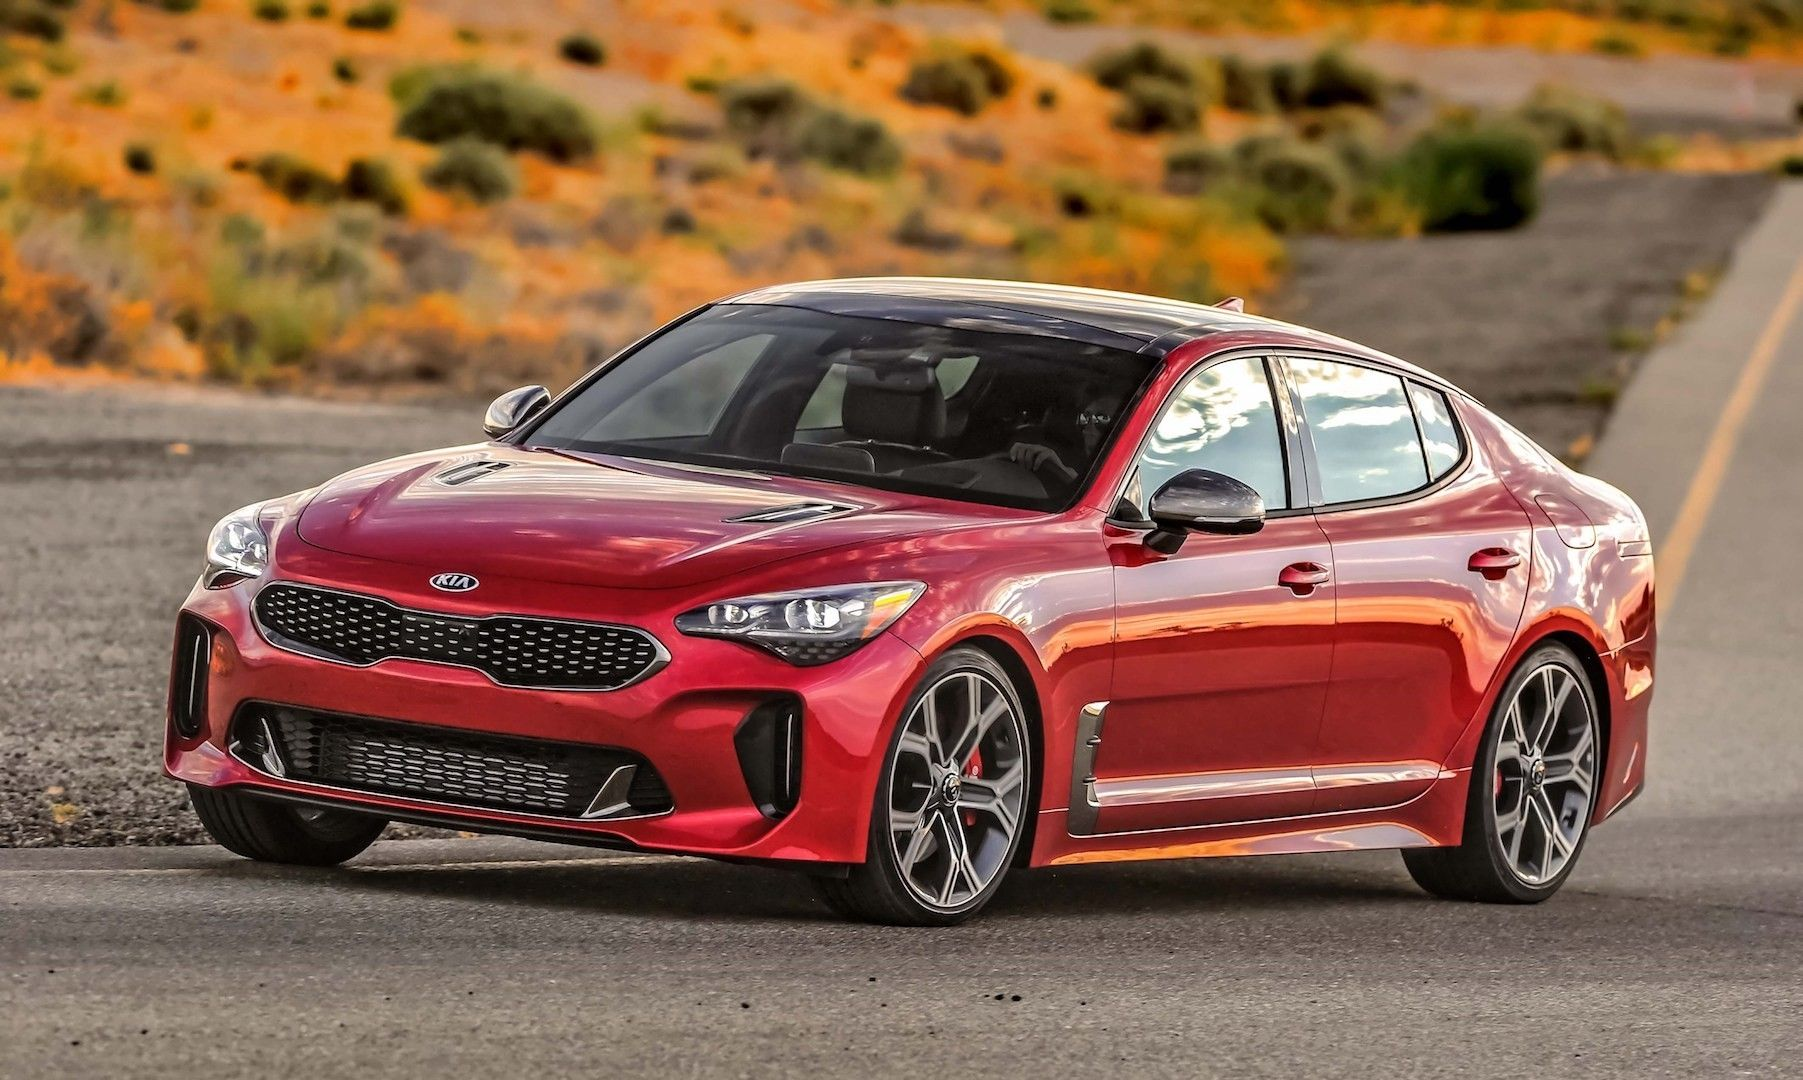 2020 Kia Stinger Release Date Rumor In 2020 Kia Stinger Kia Optima Kia